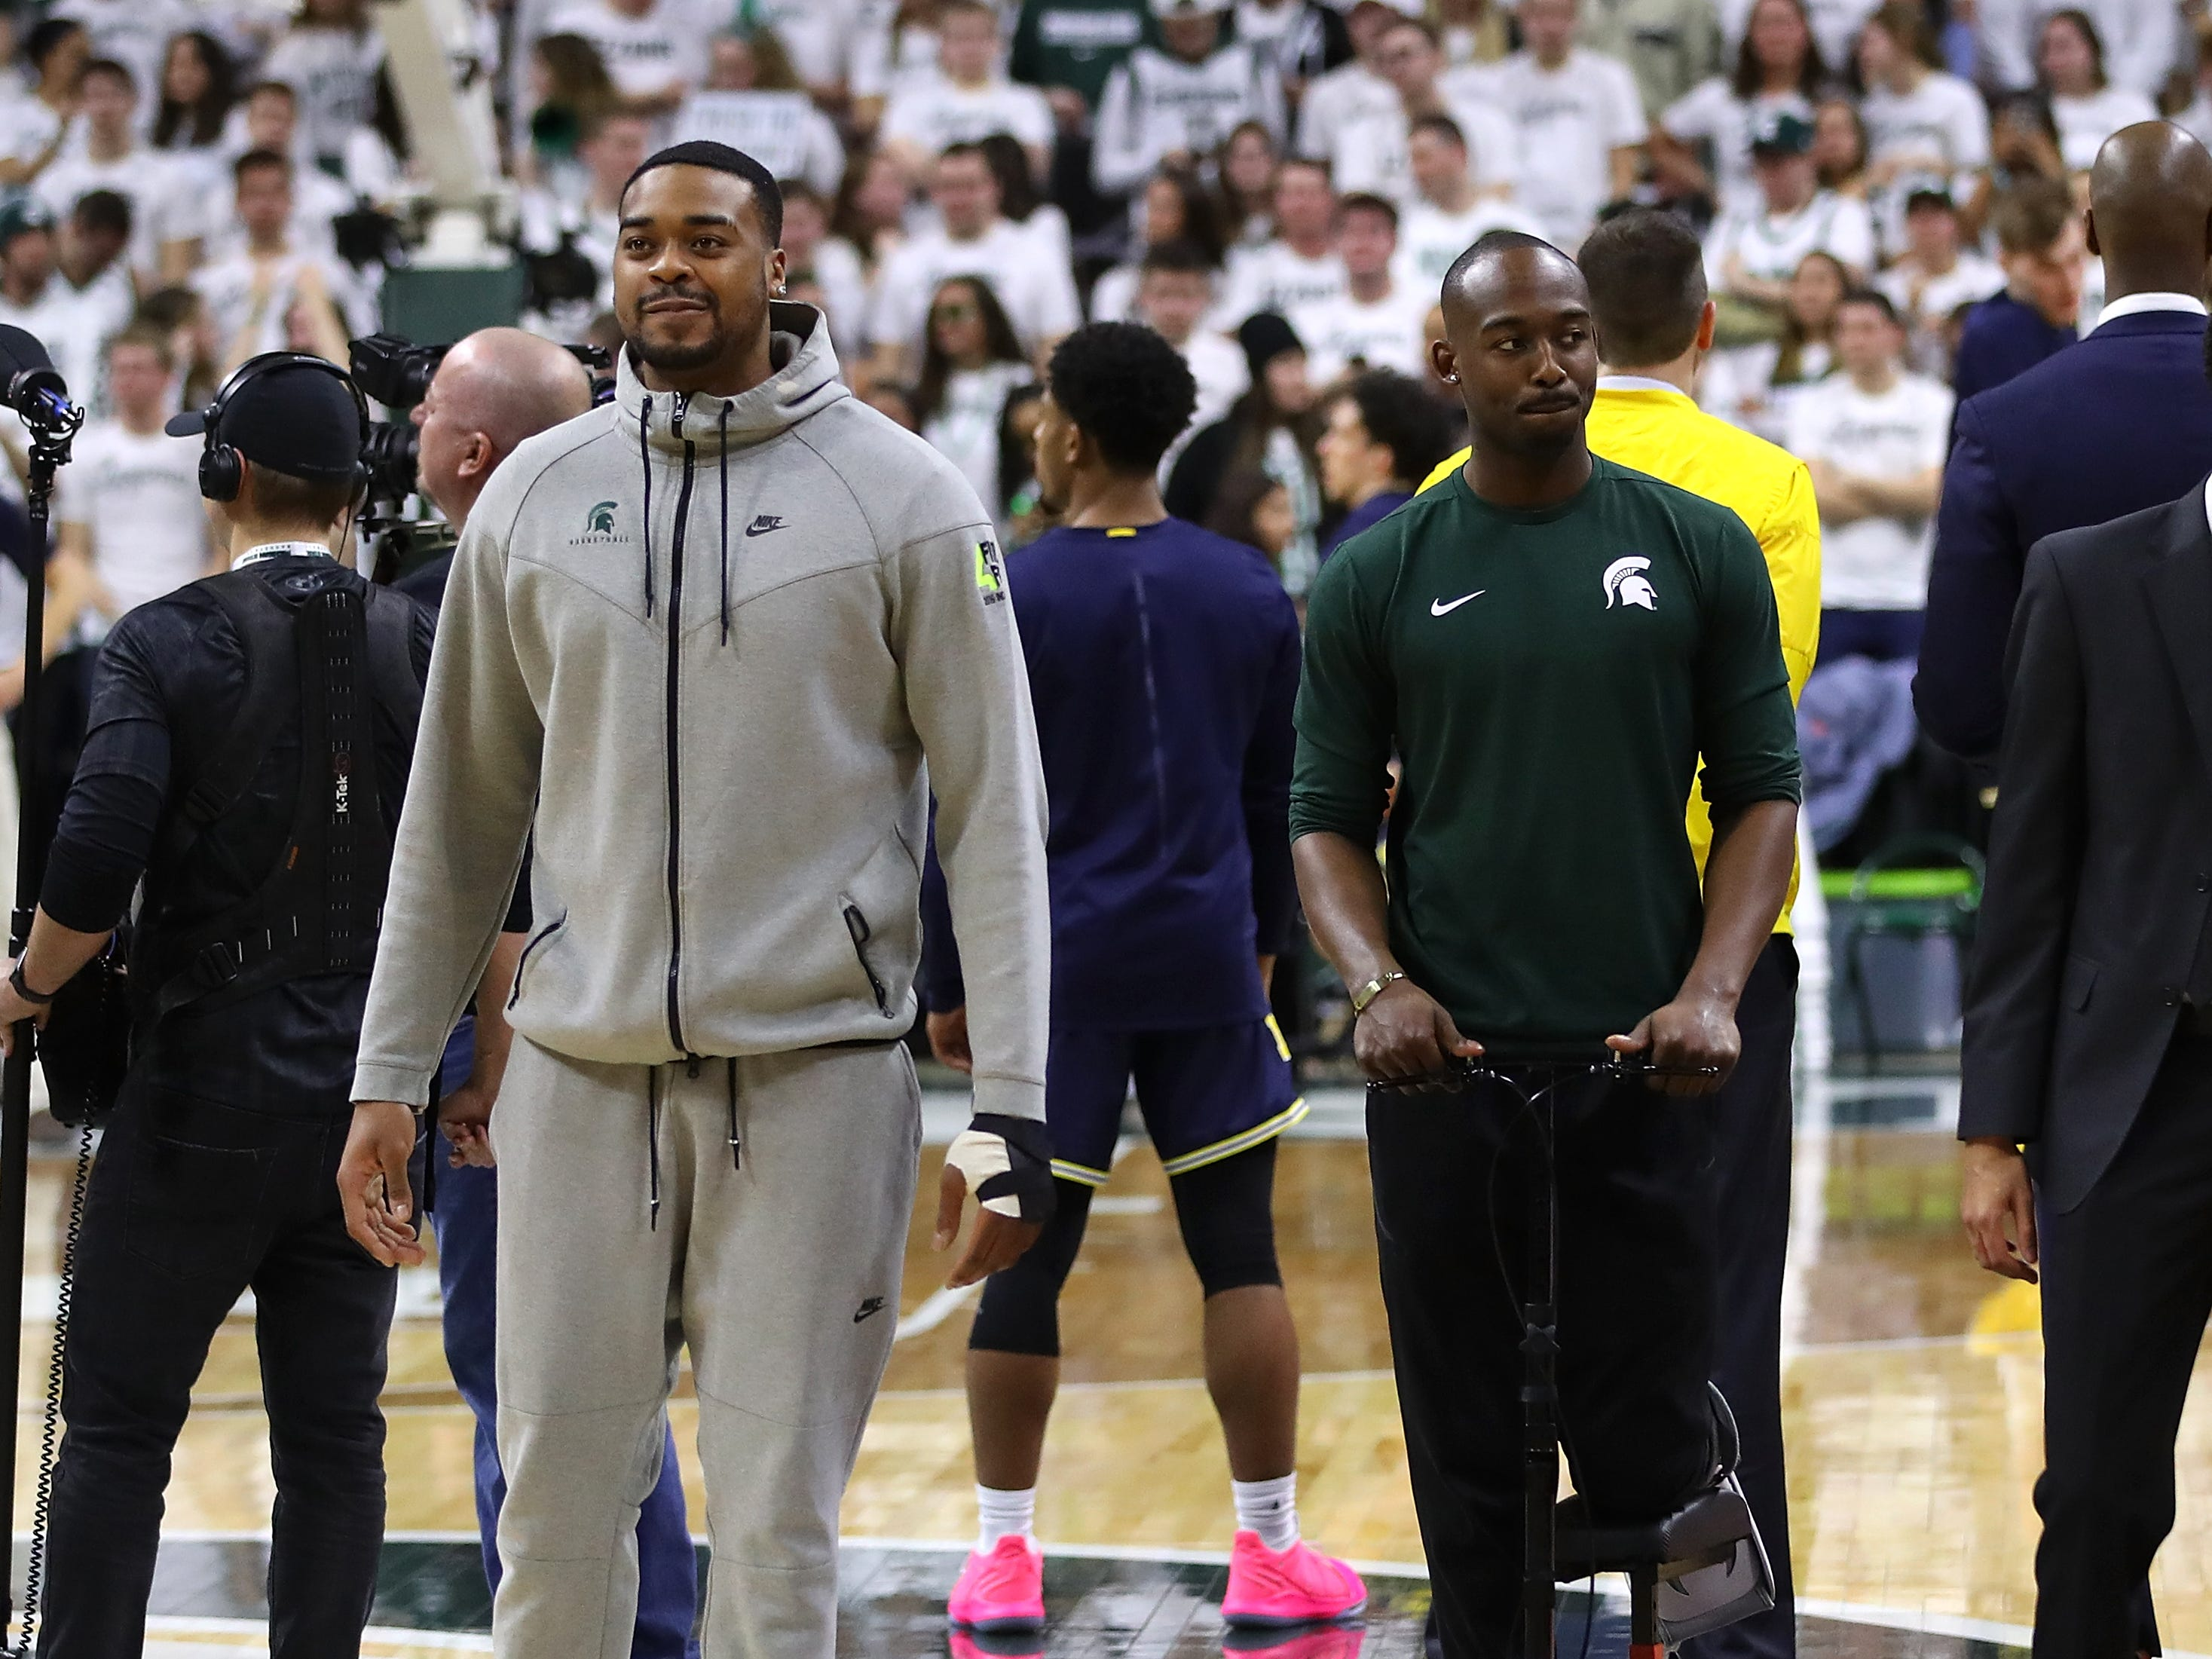 Michigan State's Nick Ward, left, and Joshua Langford look on prior to the game against Michigan at Breslin Center on March 9, 2019.